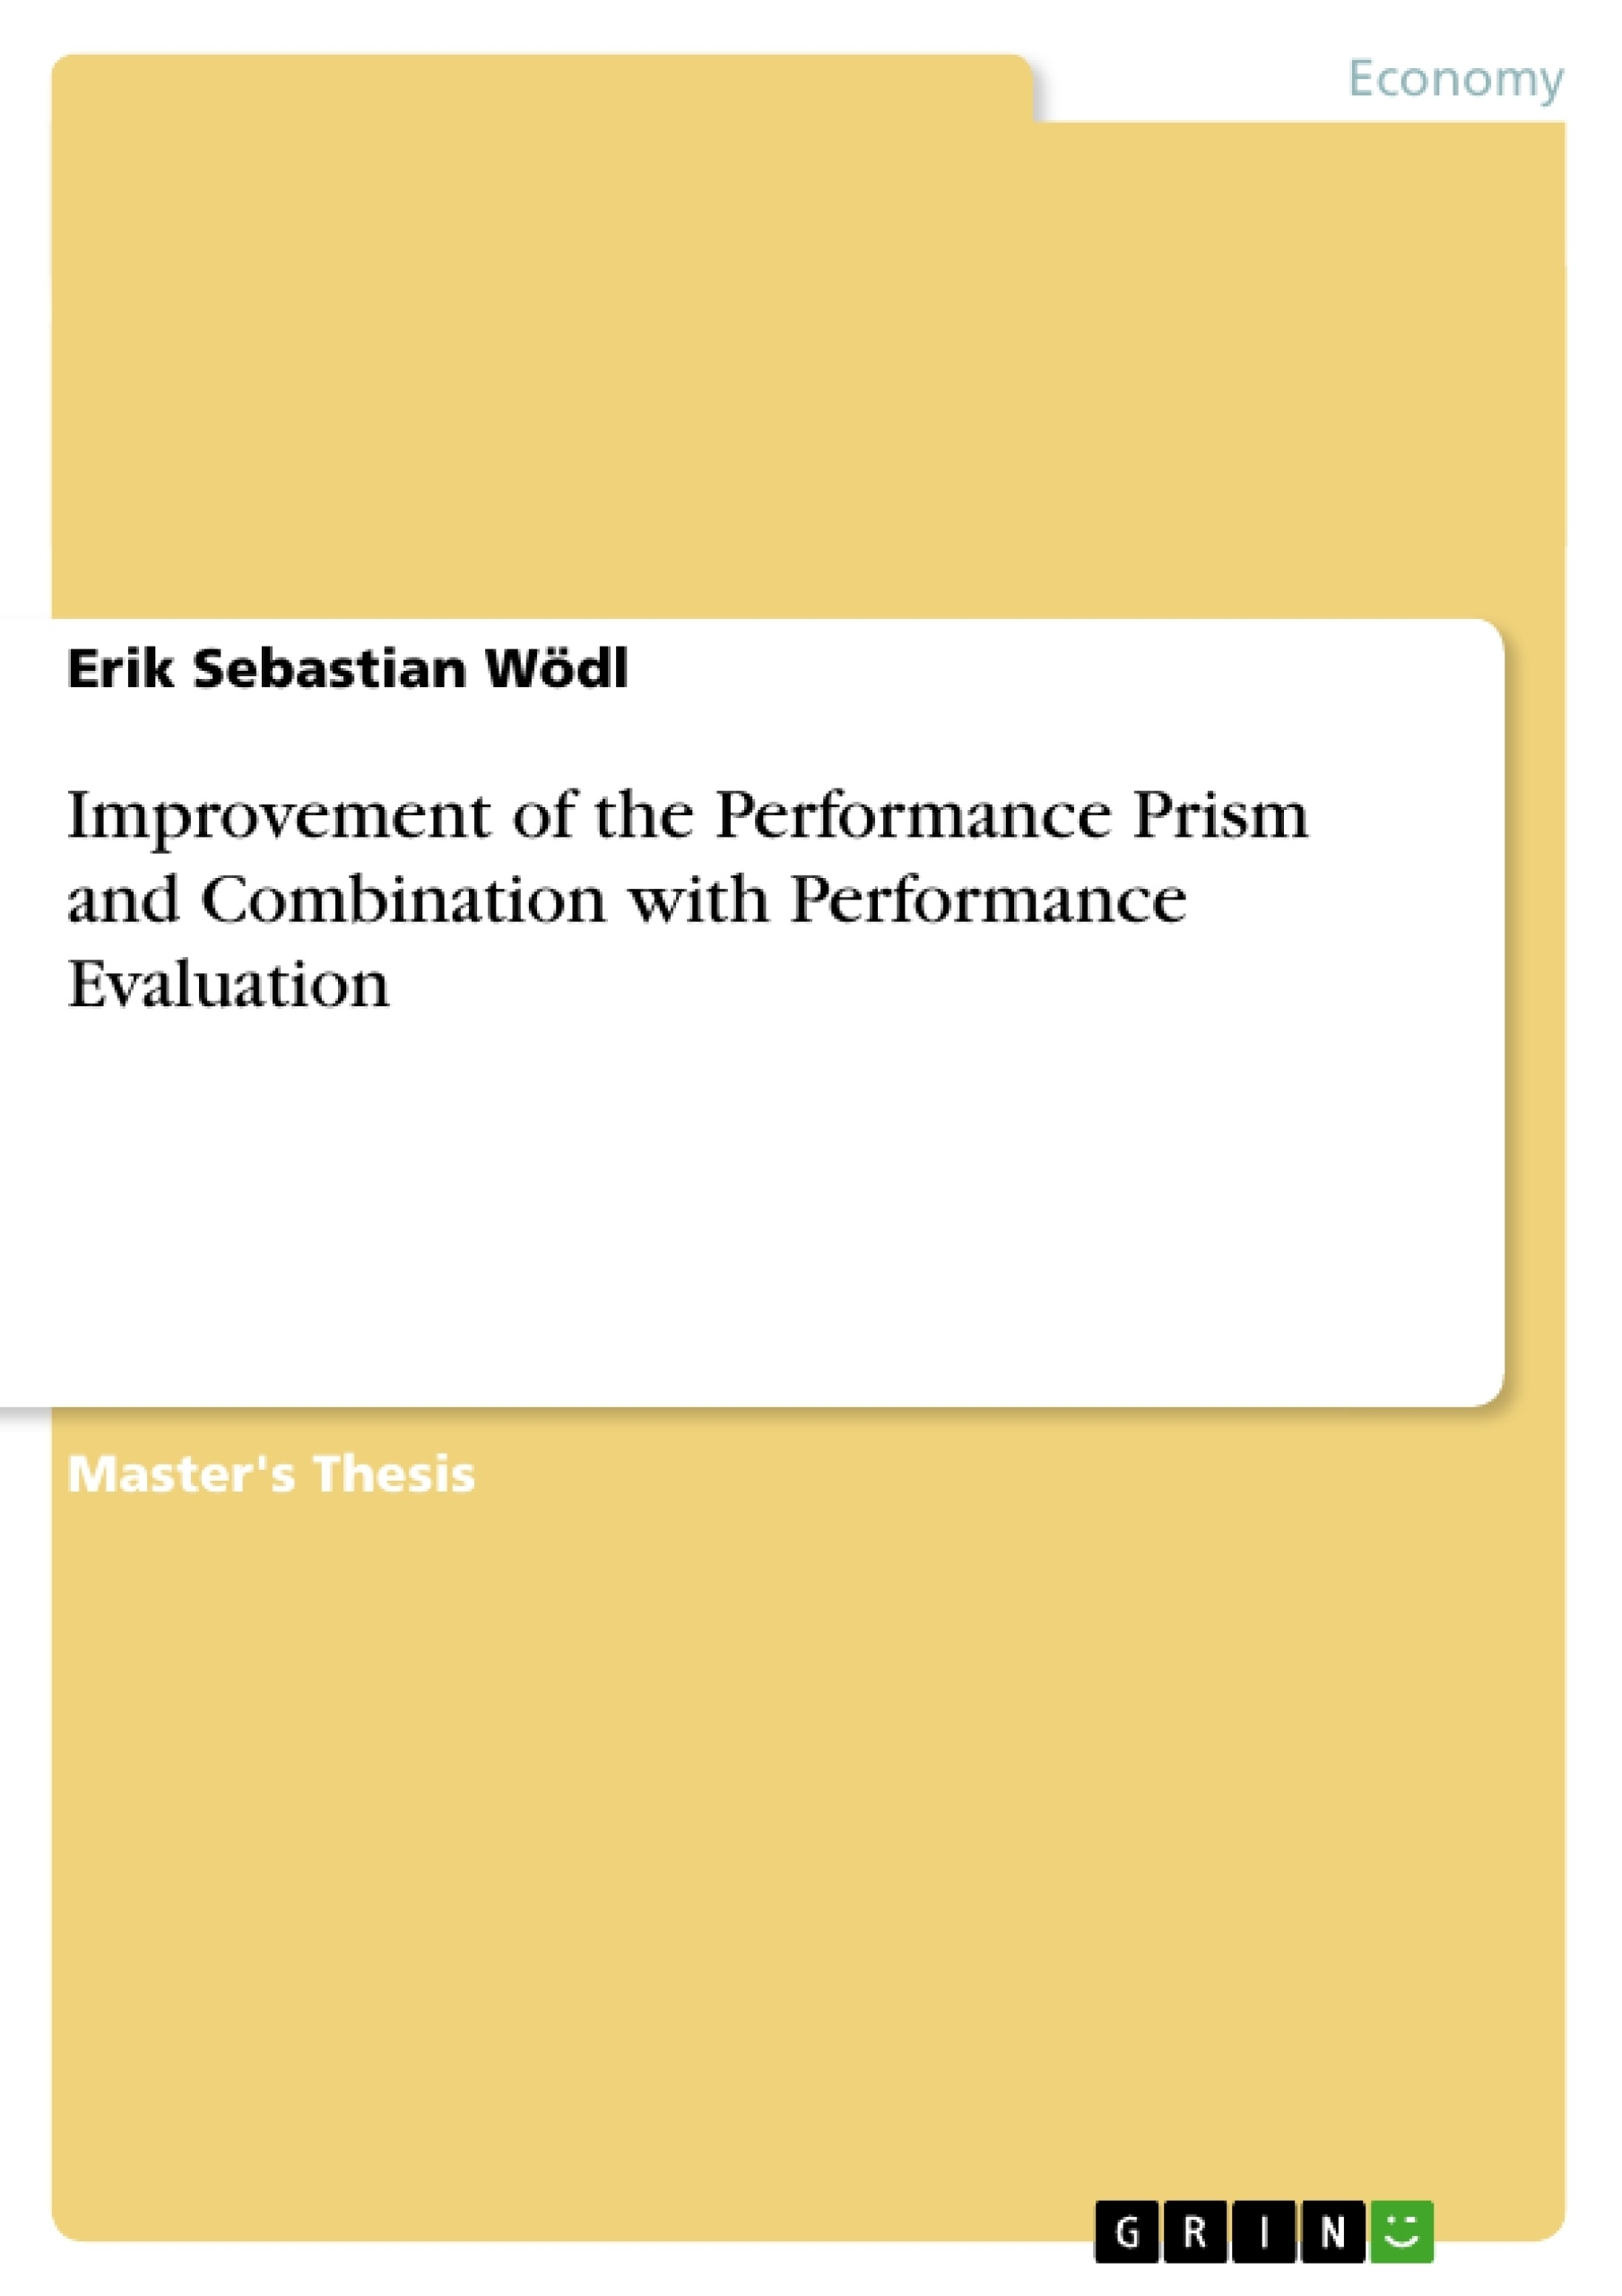 Title: Improvement of the Performance Prism and Combination with Performance Evaluation